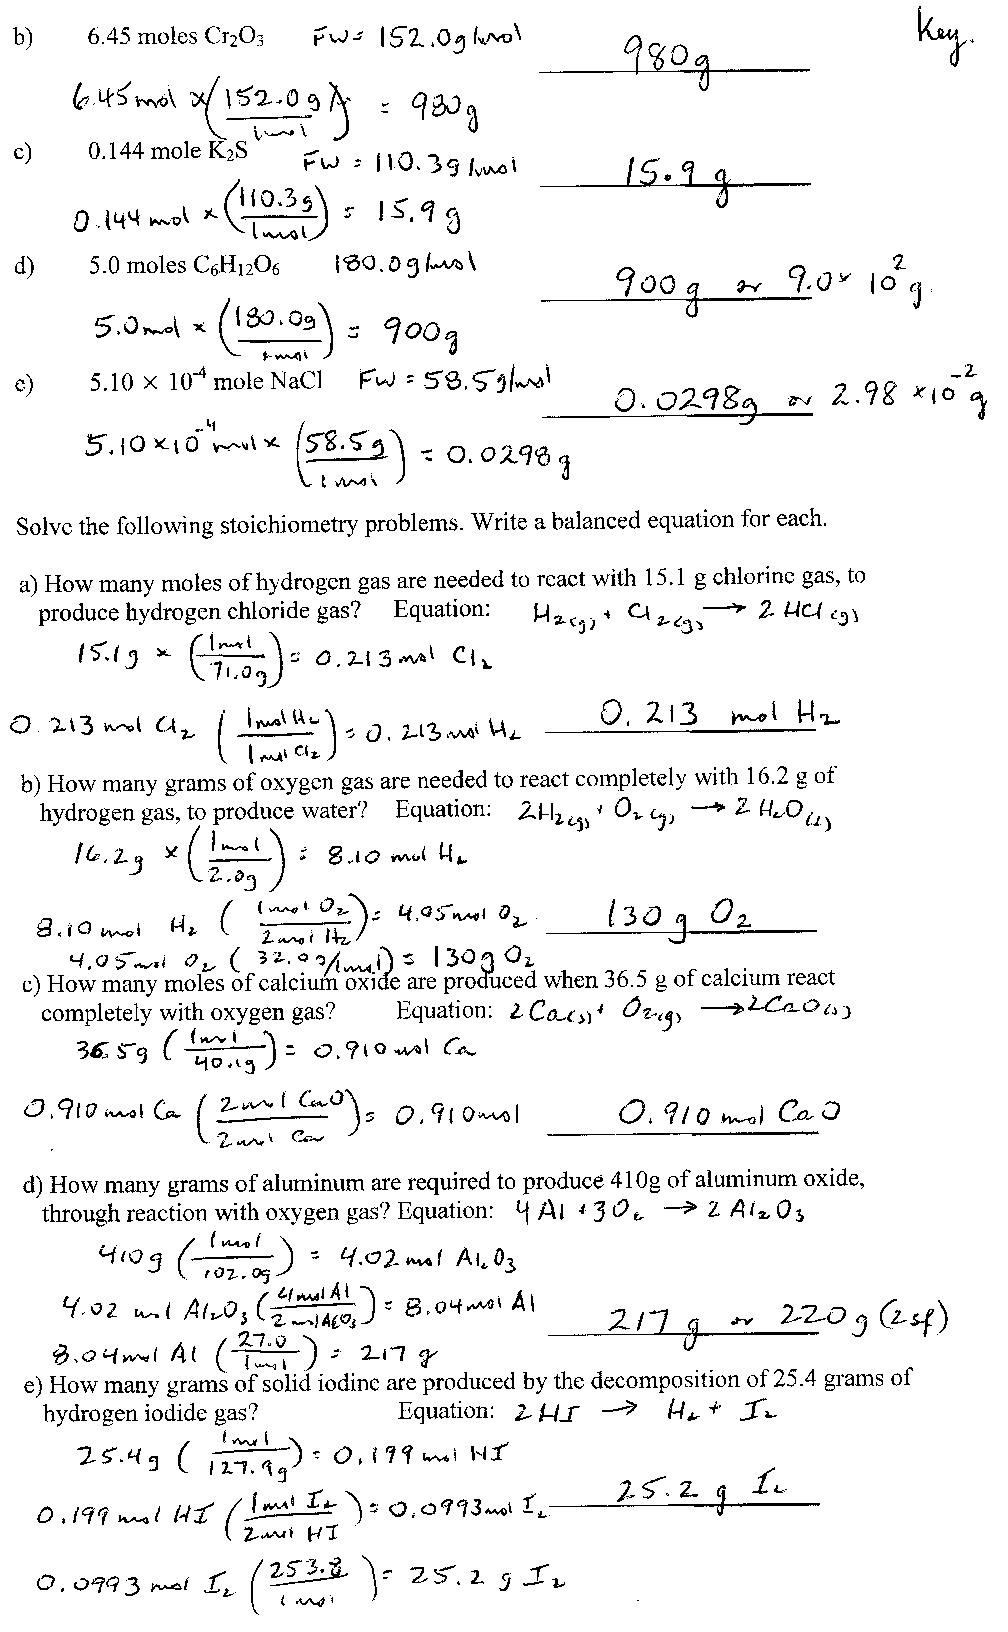 Stoichiometry Worksheet Answer Key Point Grey Secondary School